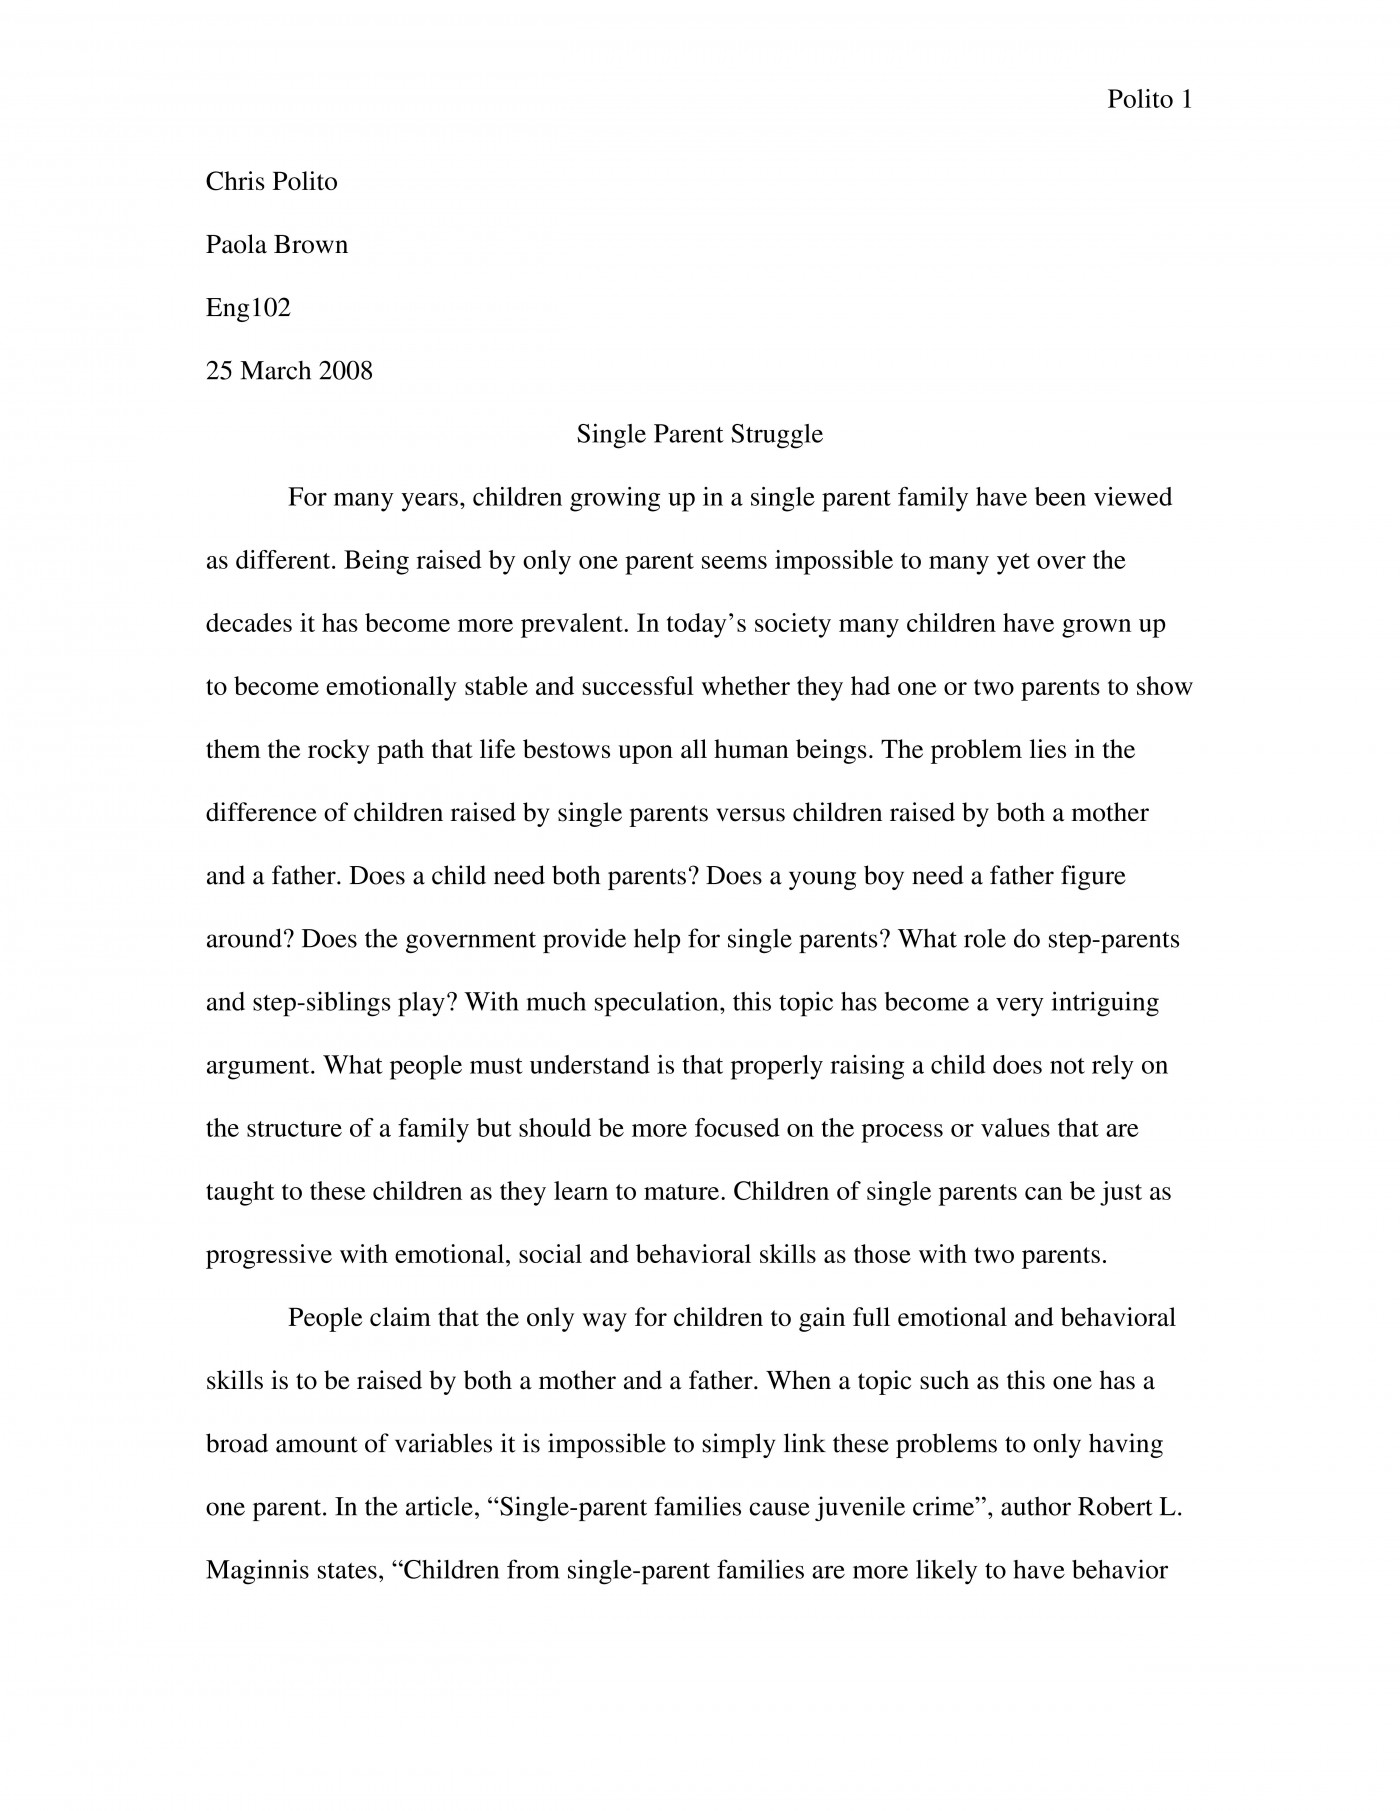 013 Expository Essay Sample 2 Format Fascinating Mla Example Introduction Examples Apa 1400